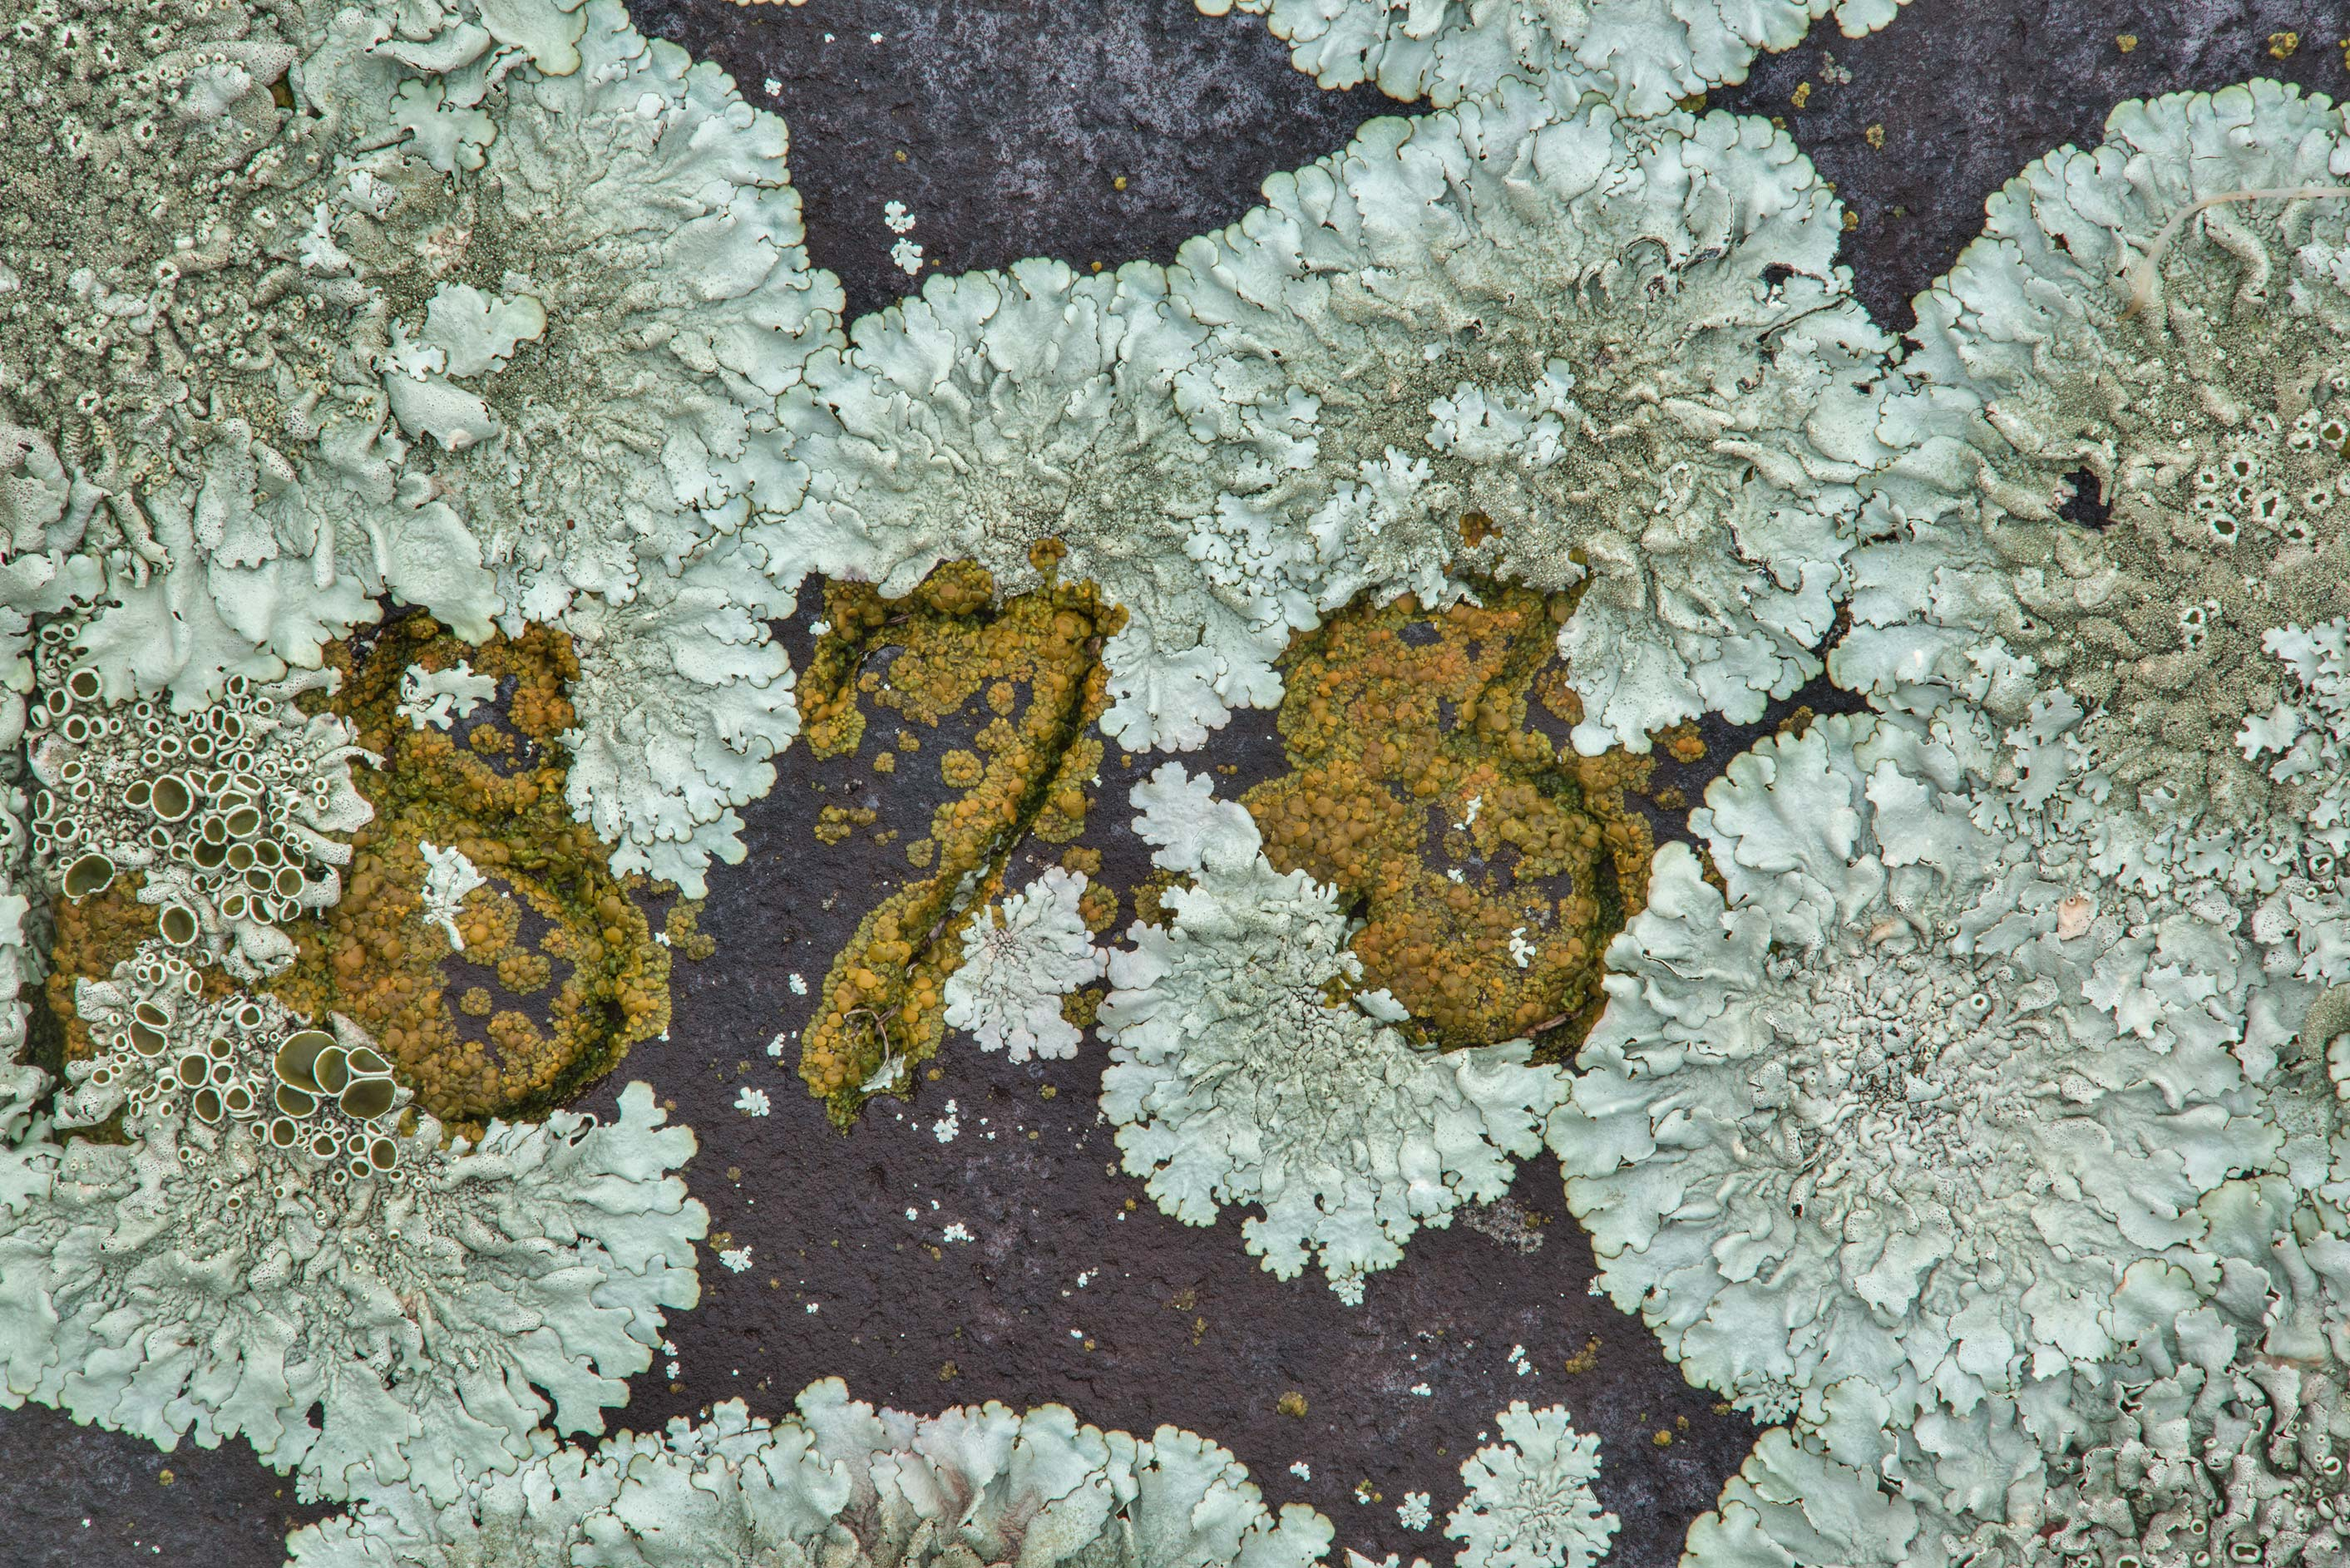 Rock-shield lichen (Xanthoparmelia) on a tomb in City Cemetery. Bryan, Texas